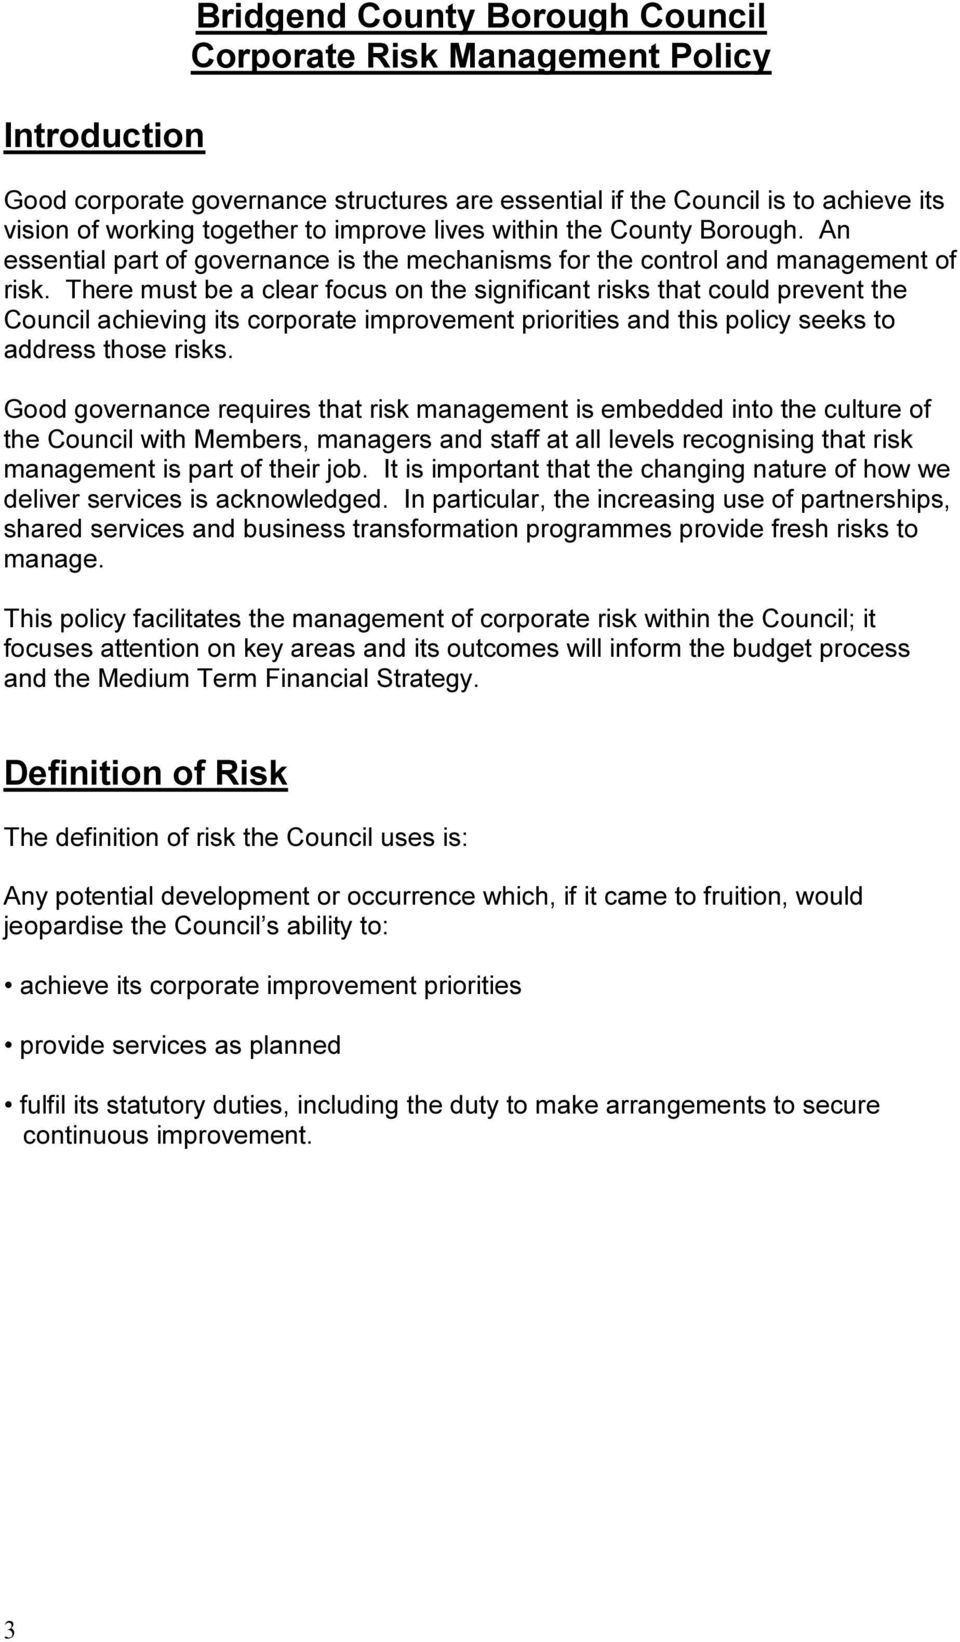 There must be a clear focus on the significant risks that could prevent the Council achieving its corporate improvement priorities and this policy seeks to address those risks.